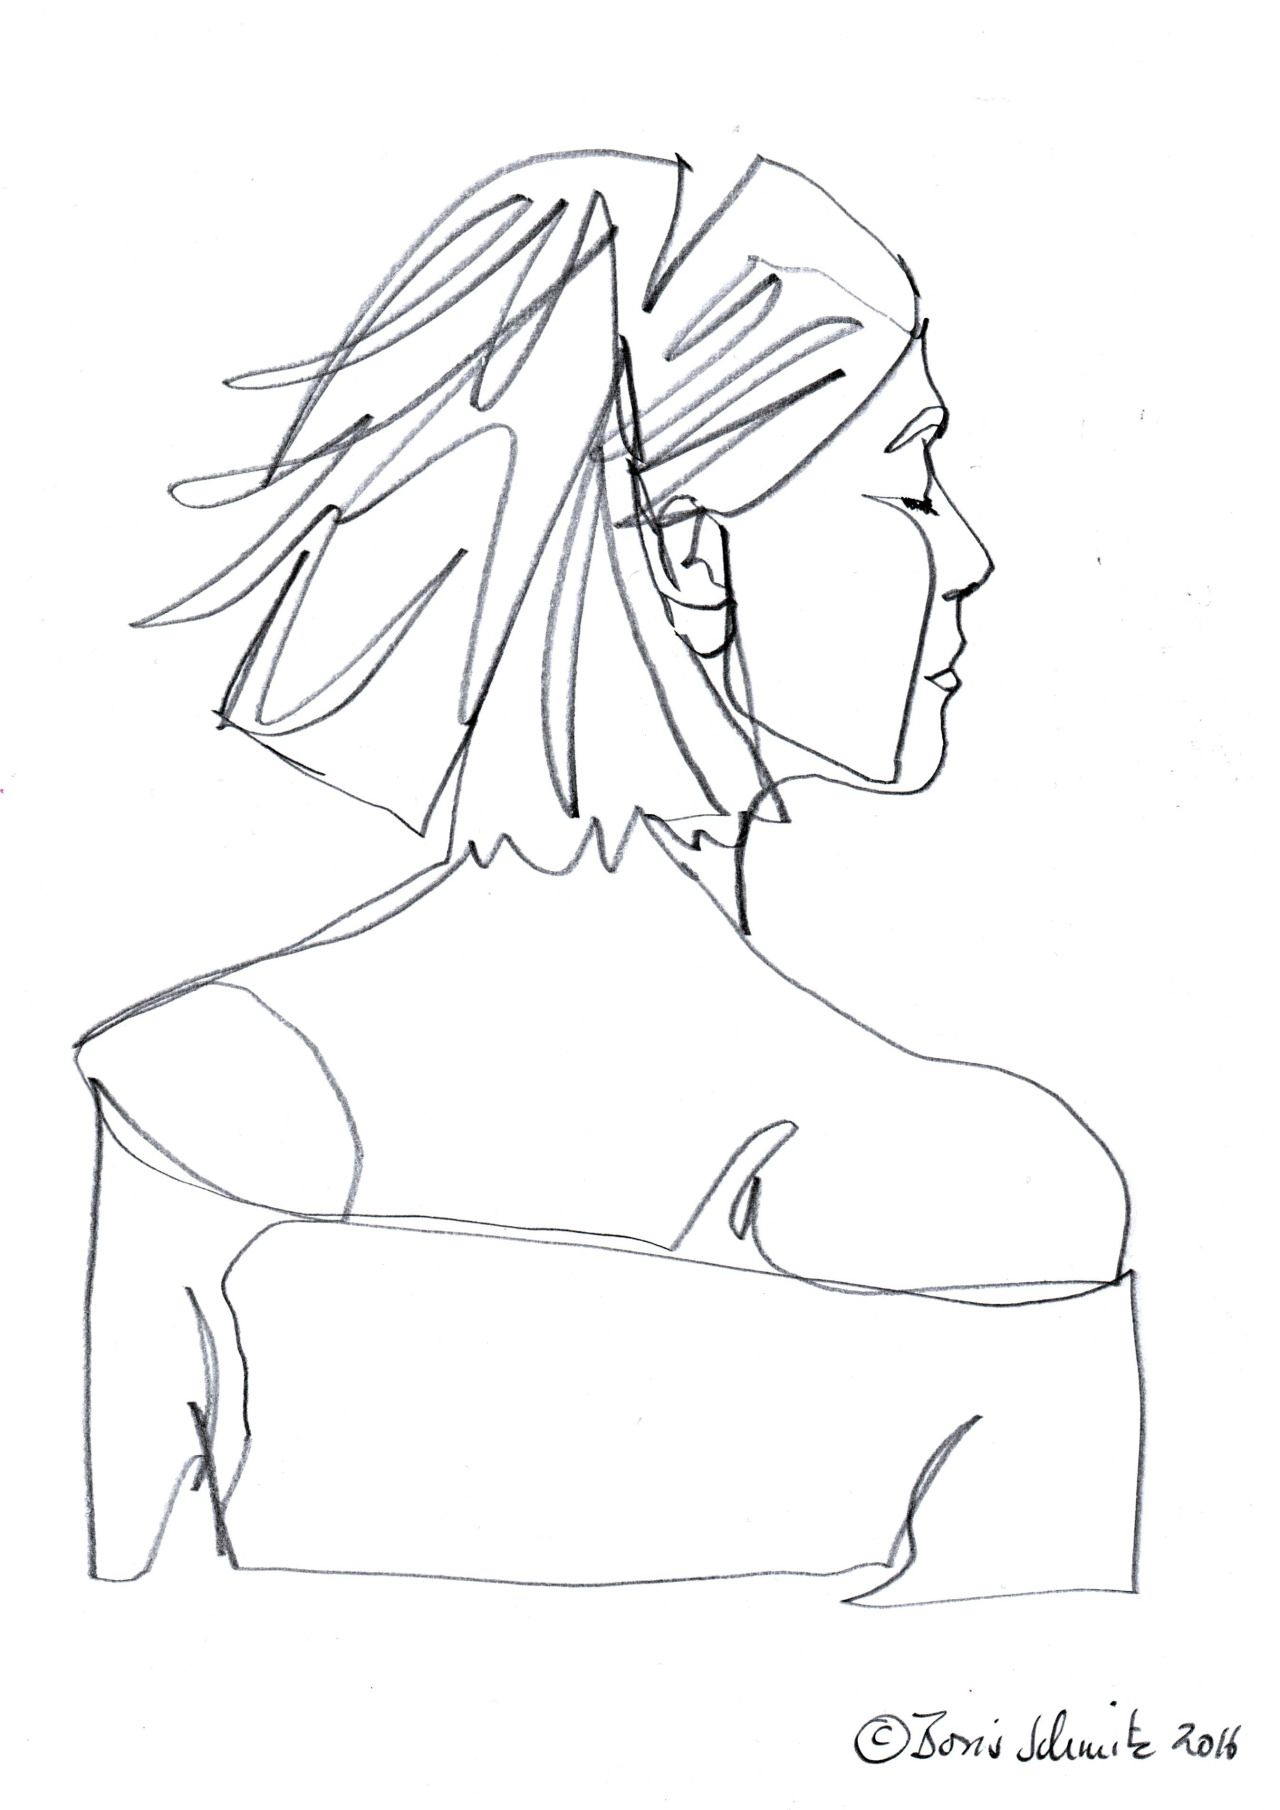 It's just a picture of Clean Continuous Line Drawing Artists